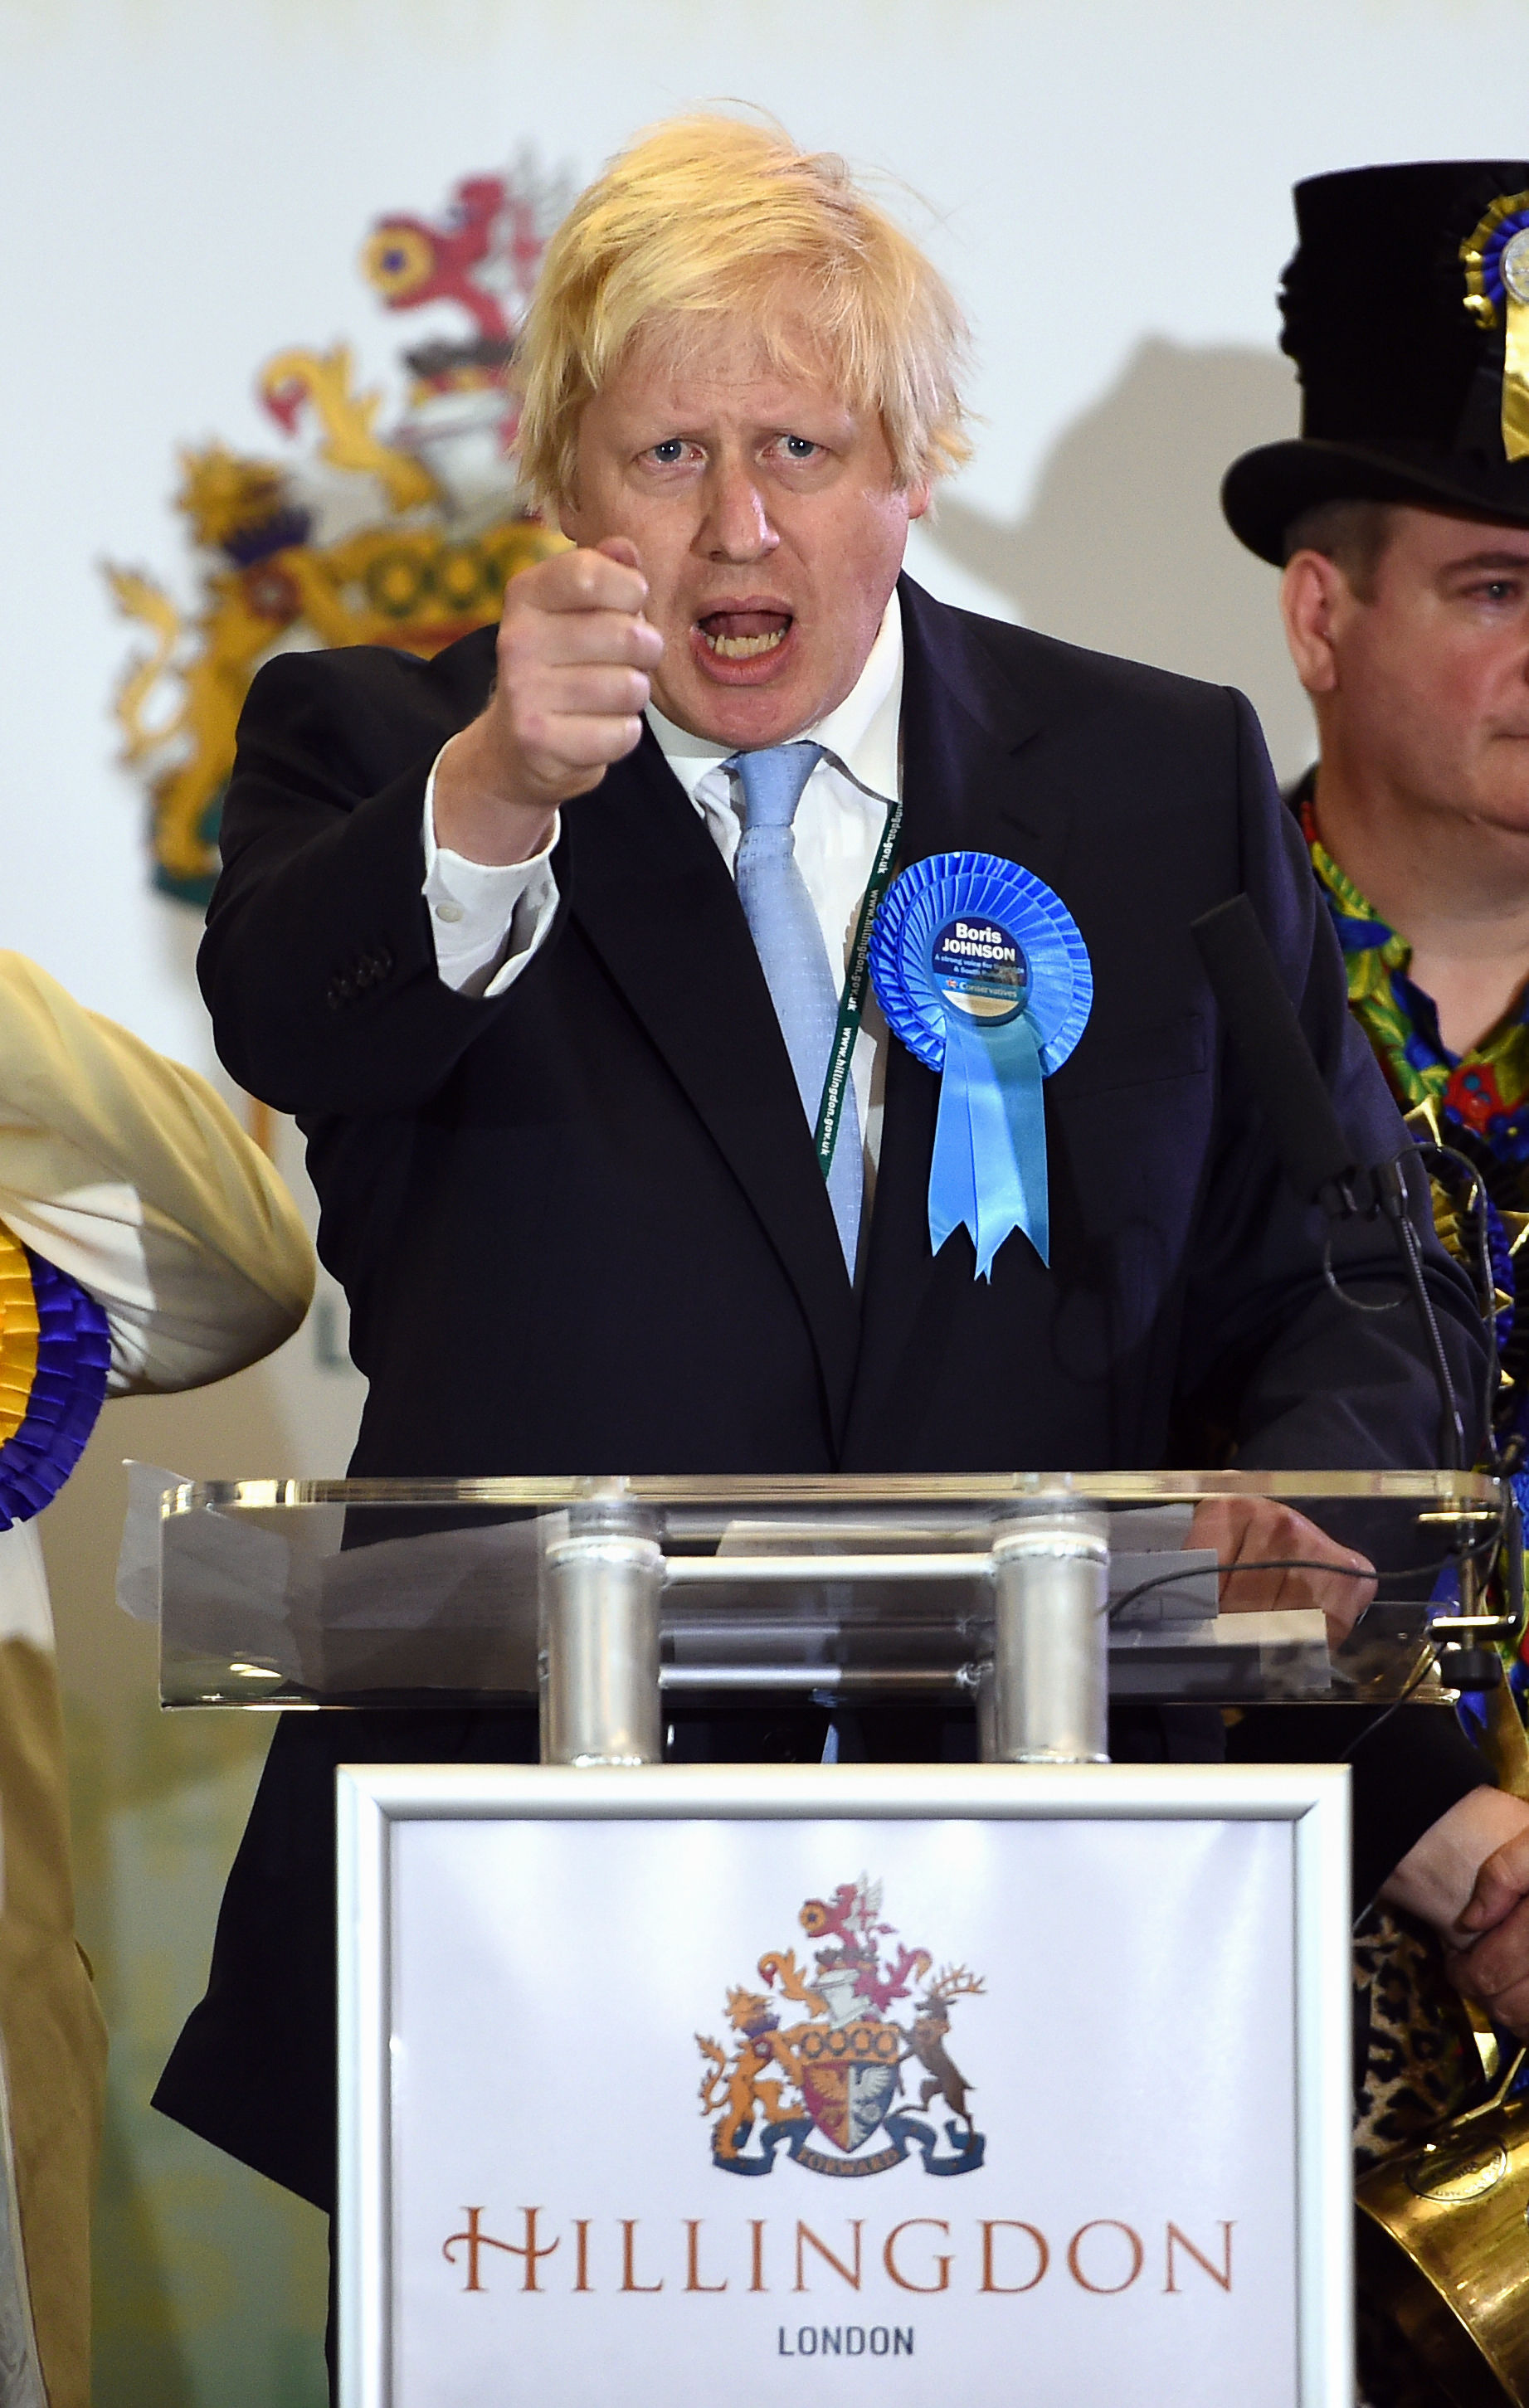 Mayor of London and prospective Conservative candidate for Uxbridge and South Ruislip, Boris Johnson, speaks after winning the seat during the General Election count at Brunel University, London.